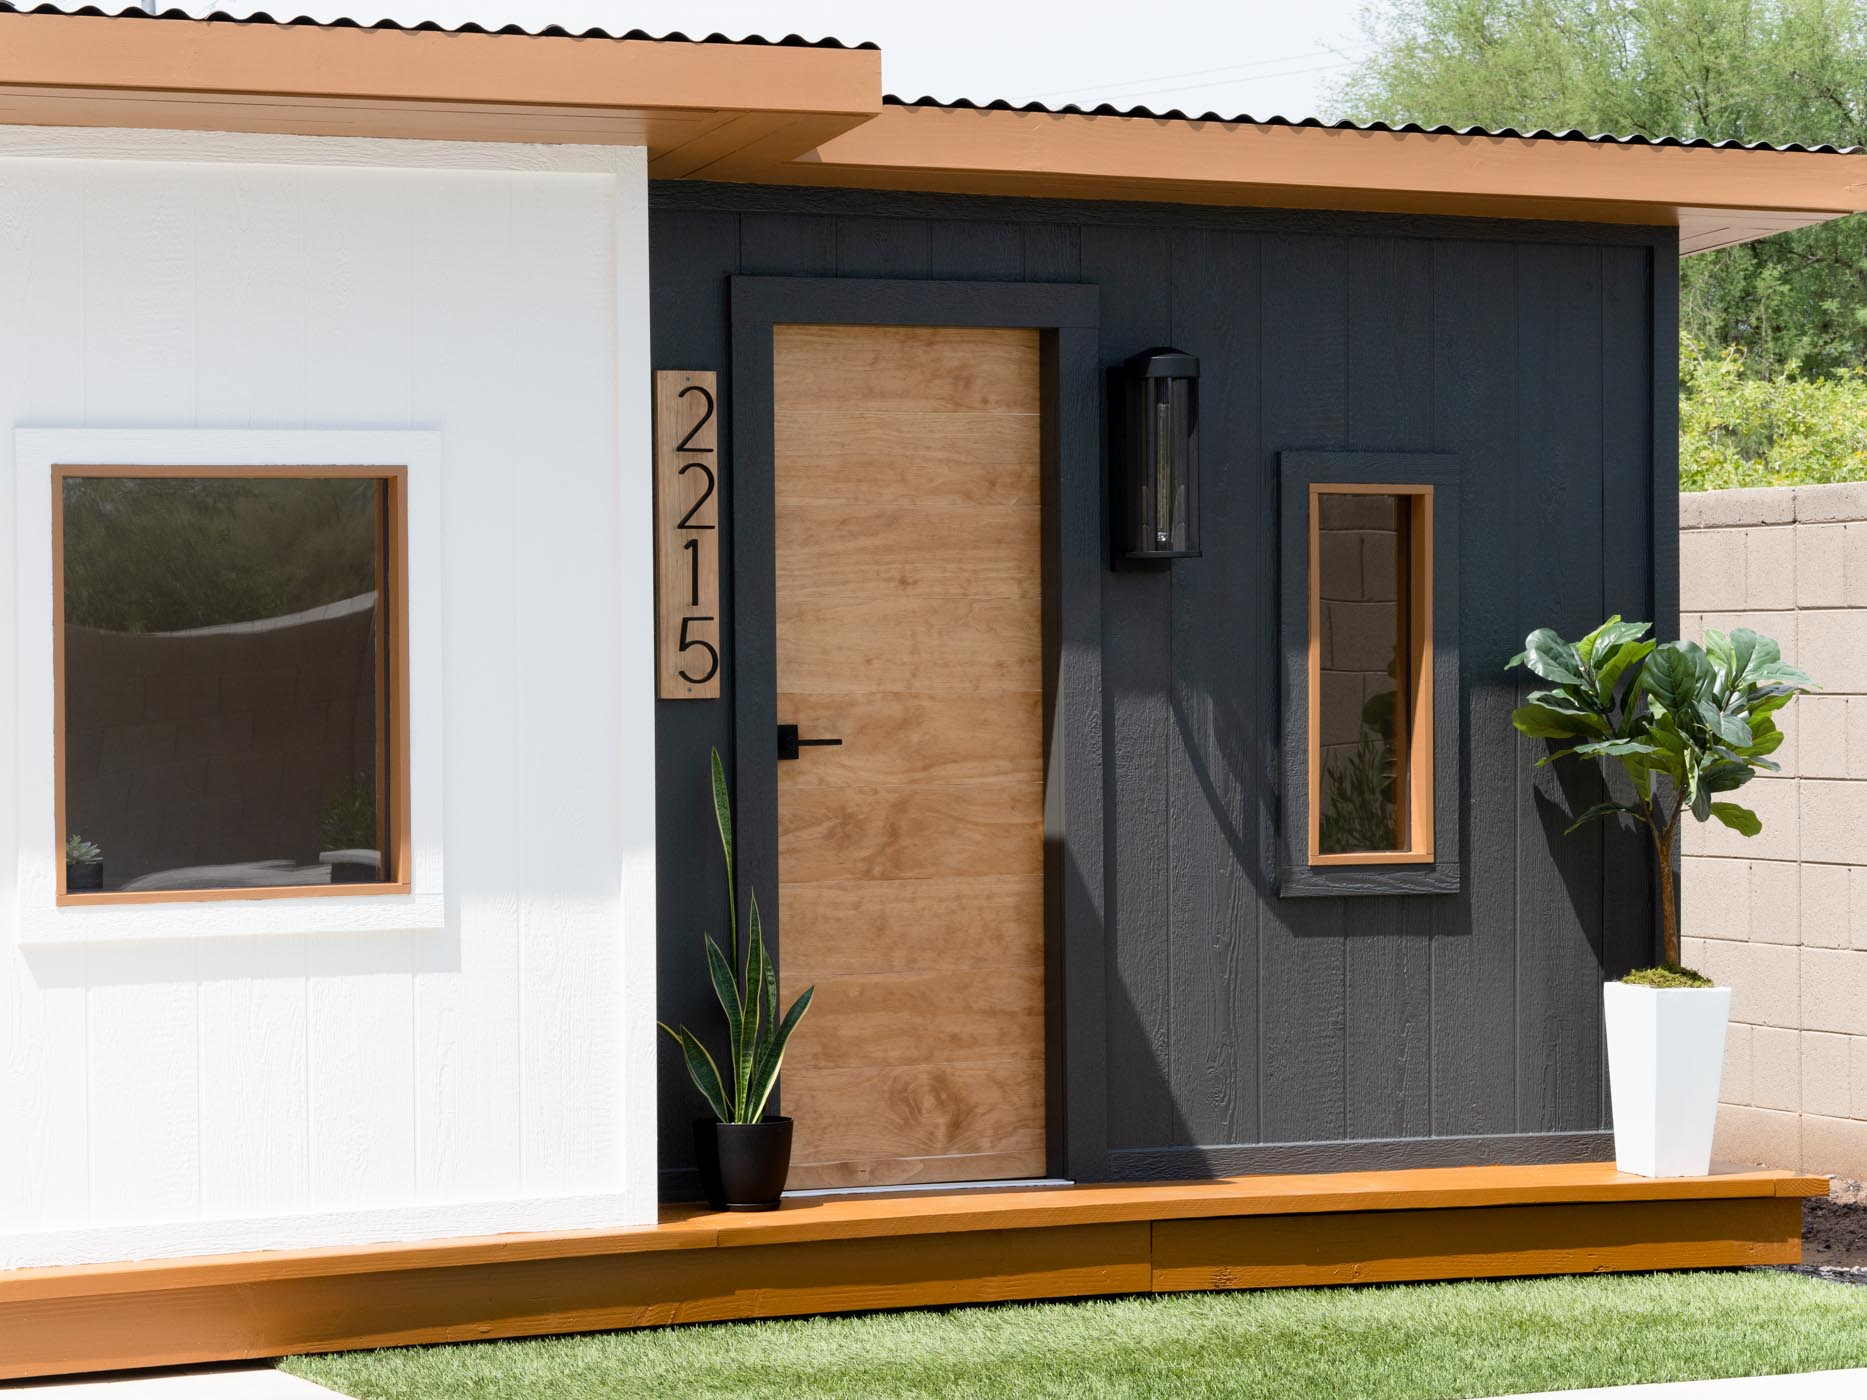 Black and white house with DIY paneled wooden exterior door